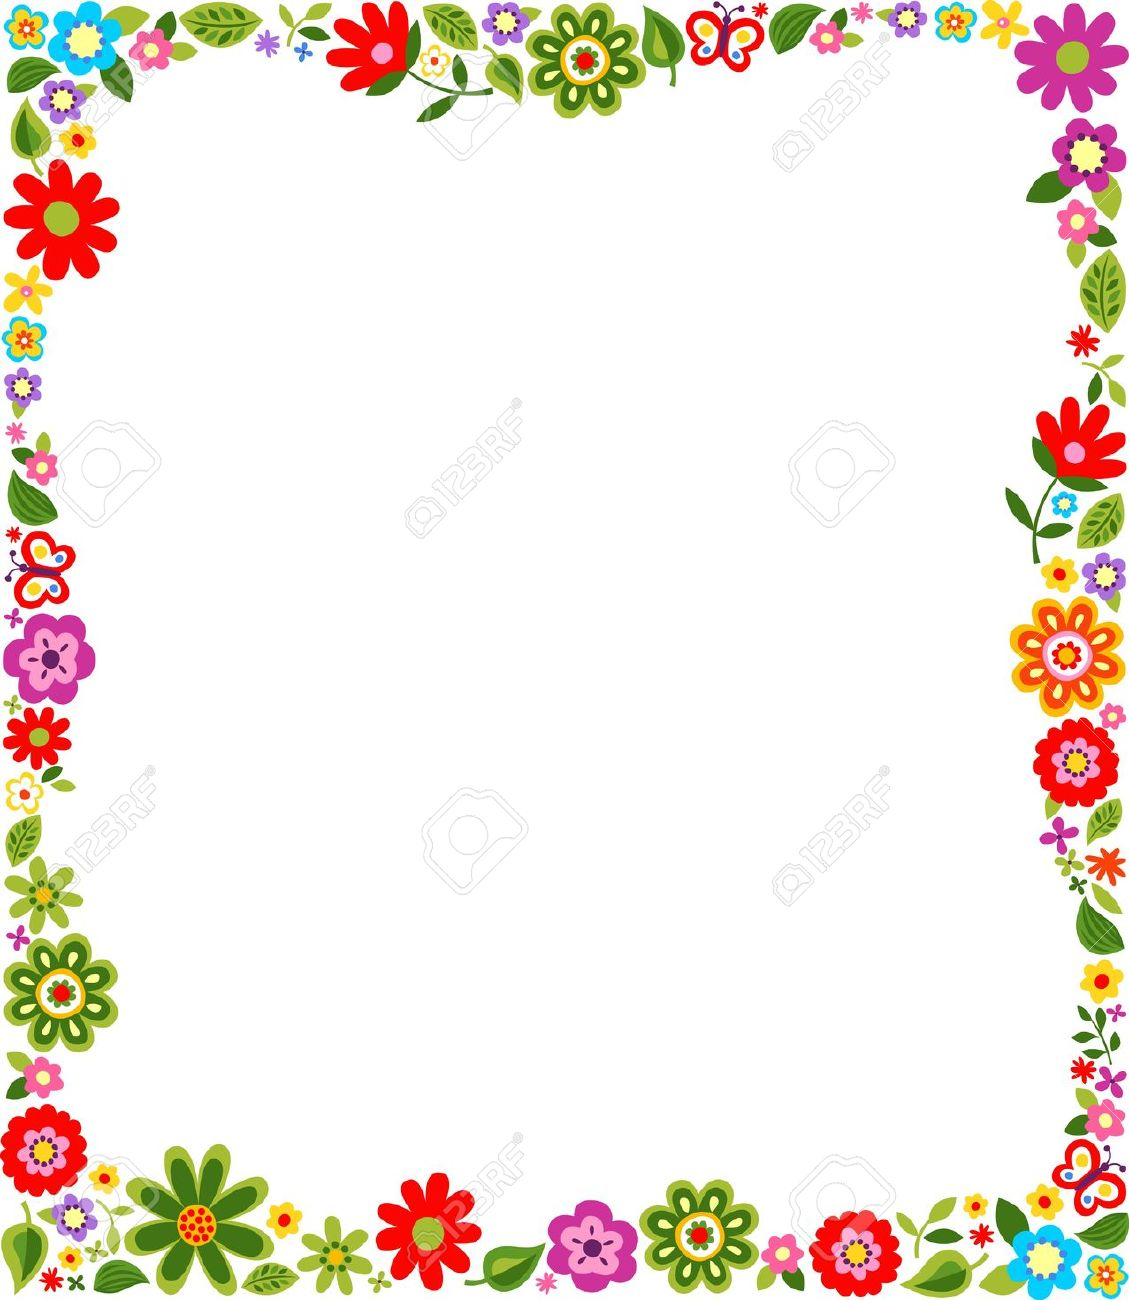 free floral borders frames clipart.